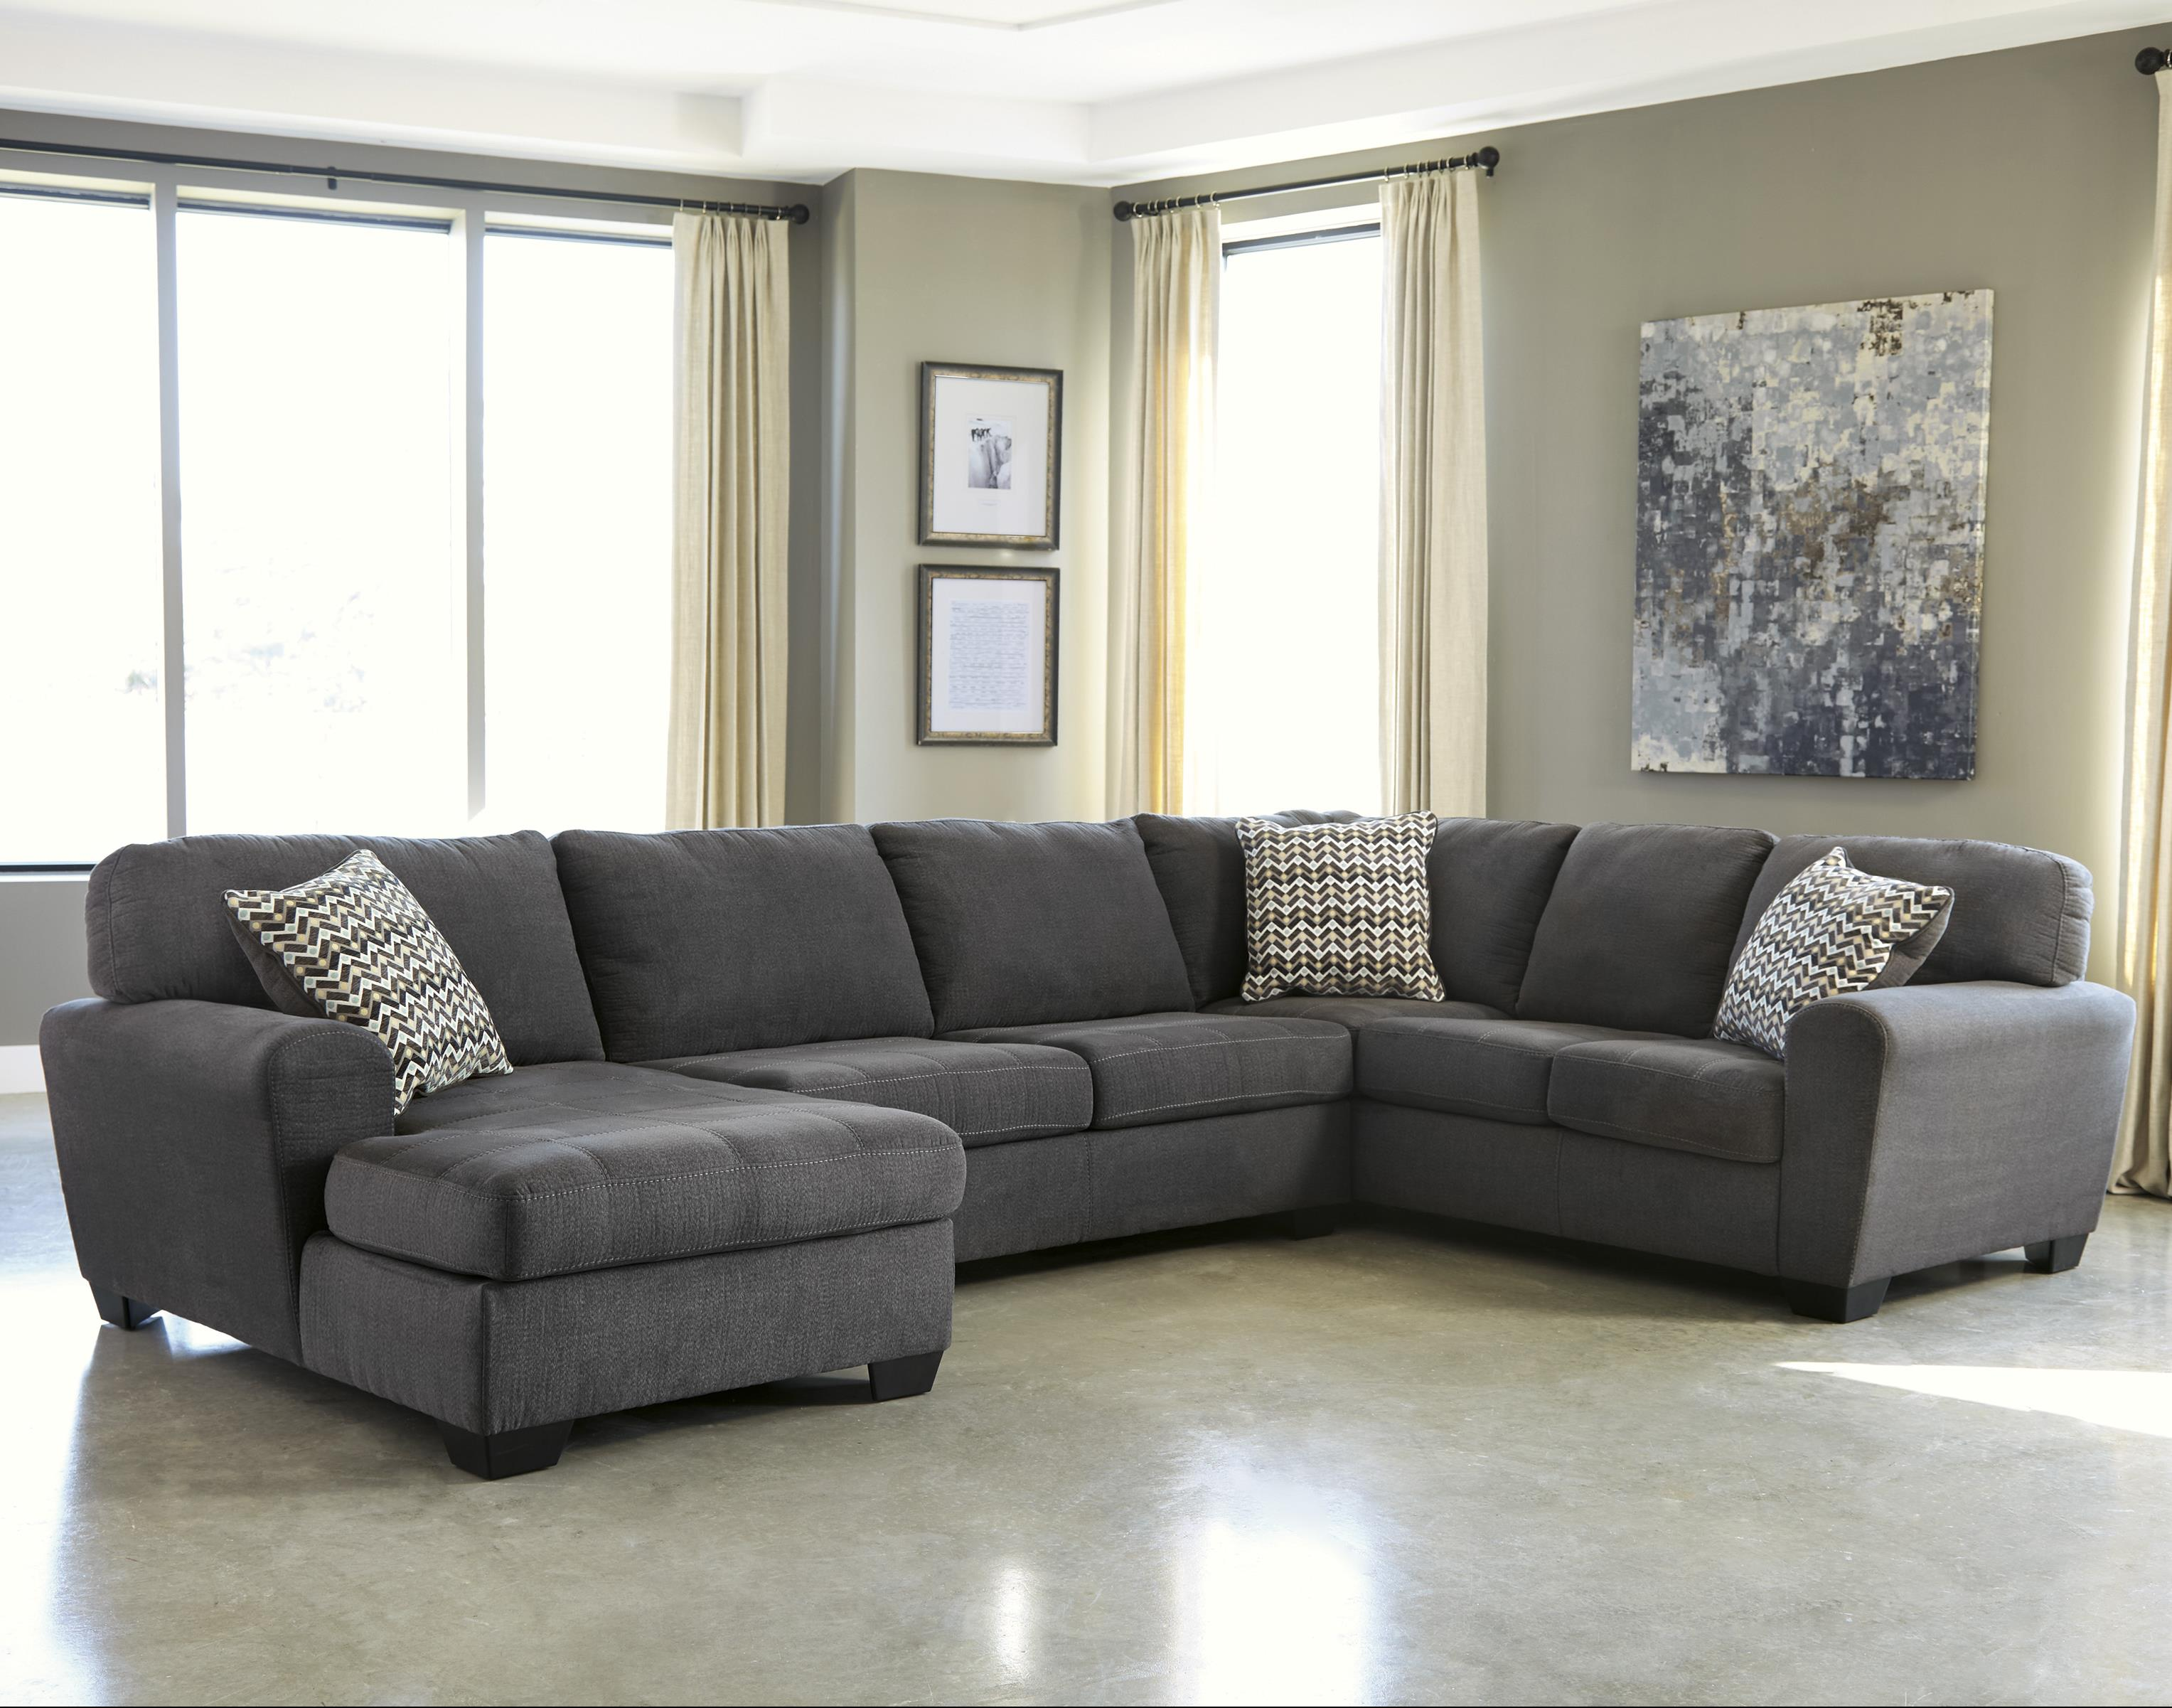 Sorenton 3-Piece Sectional with Chaise by Benchcraft at Walker's Furniture